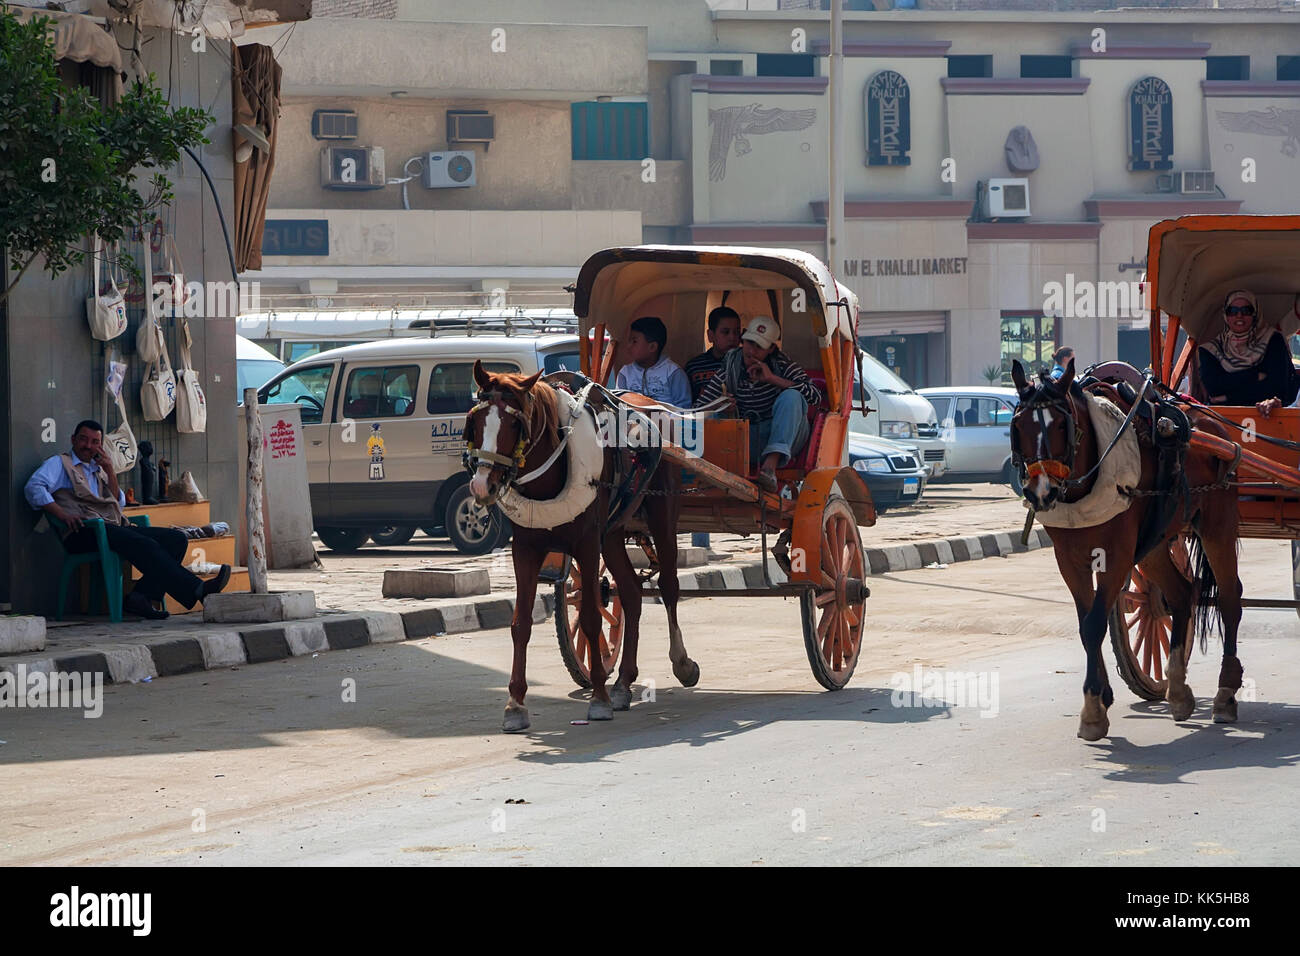 GIZA, EGYPT - FEBRUARY 2010: Horse carriages on city street Stock Photo